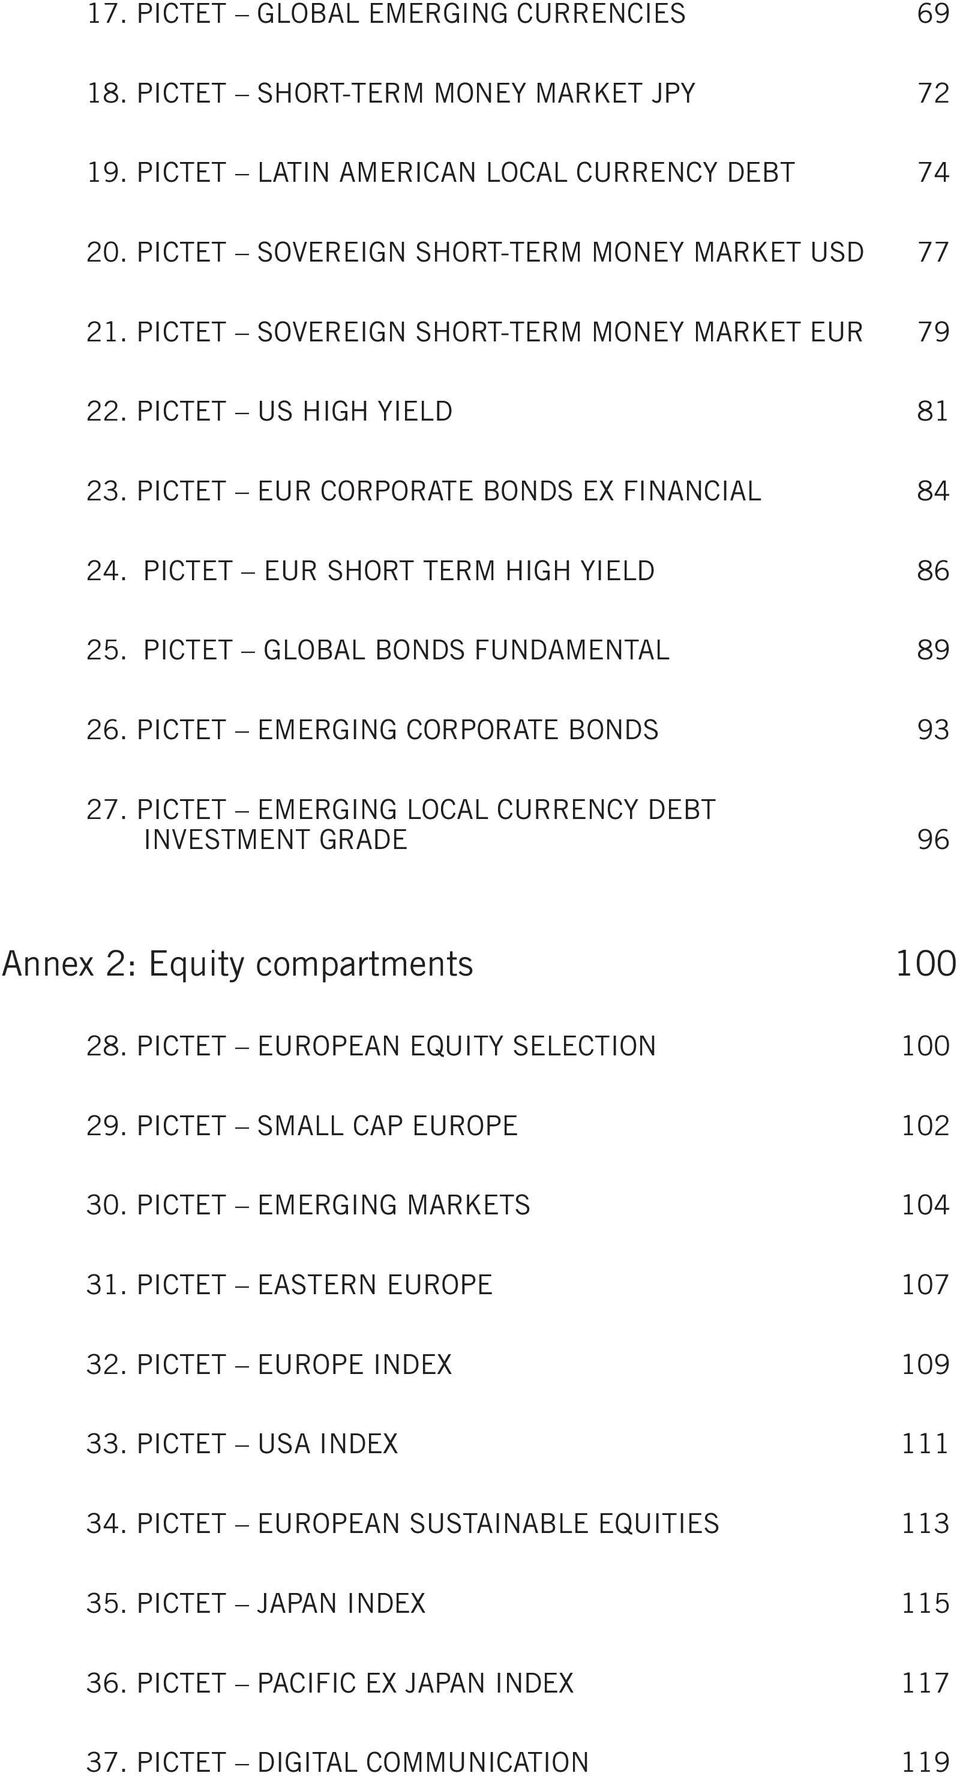 PICTET GLOBAL BONDS FUNDAMENTAL 89 26. PICTET EMERGING CORPORATE BONDS 93 27. PICTET EMERGING LOCAL CURRENCY DEBT INVESTMENT GRADE 96 Annex 2: Equity compartments 100 28.